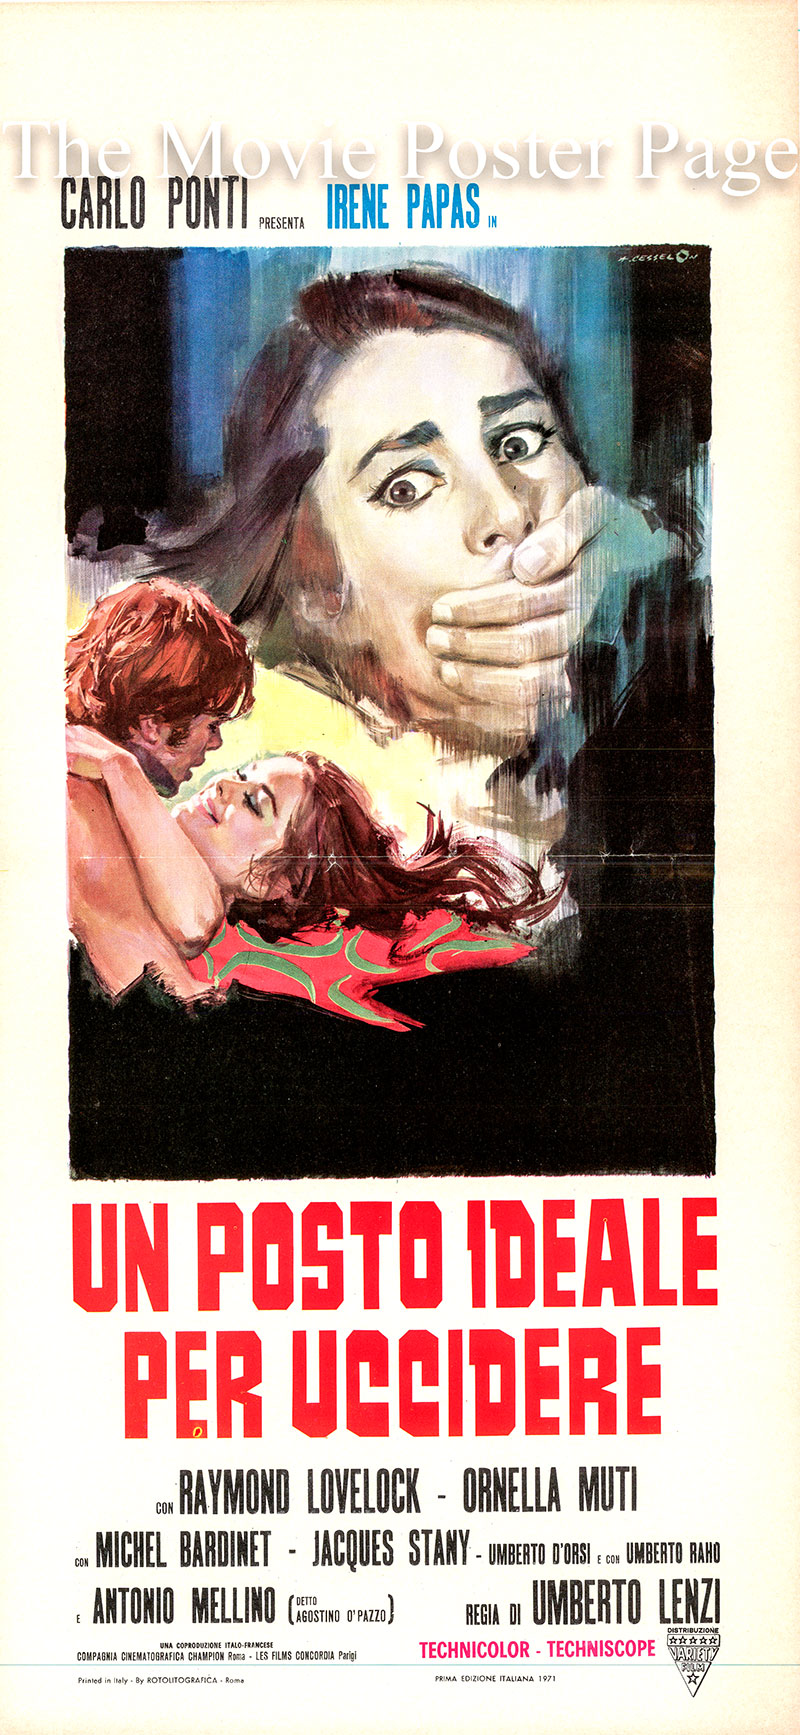 Pictured is an Italian locandina poster for the 1971 Umberto Lenzi film Oasis of Fear, starring Irene Papas.